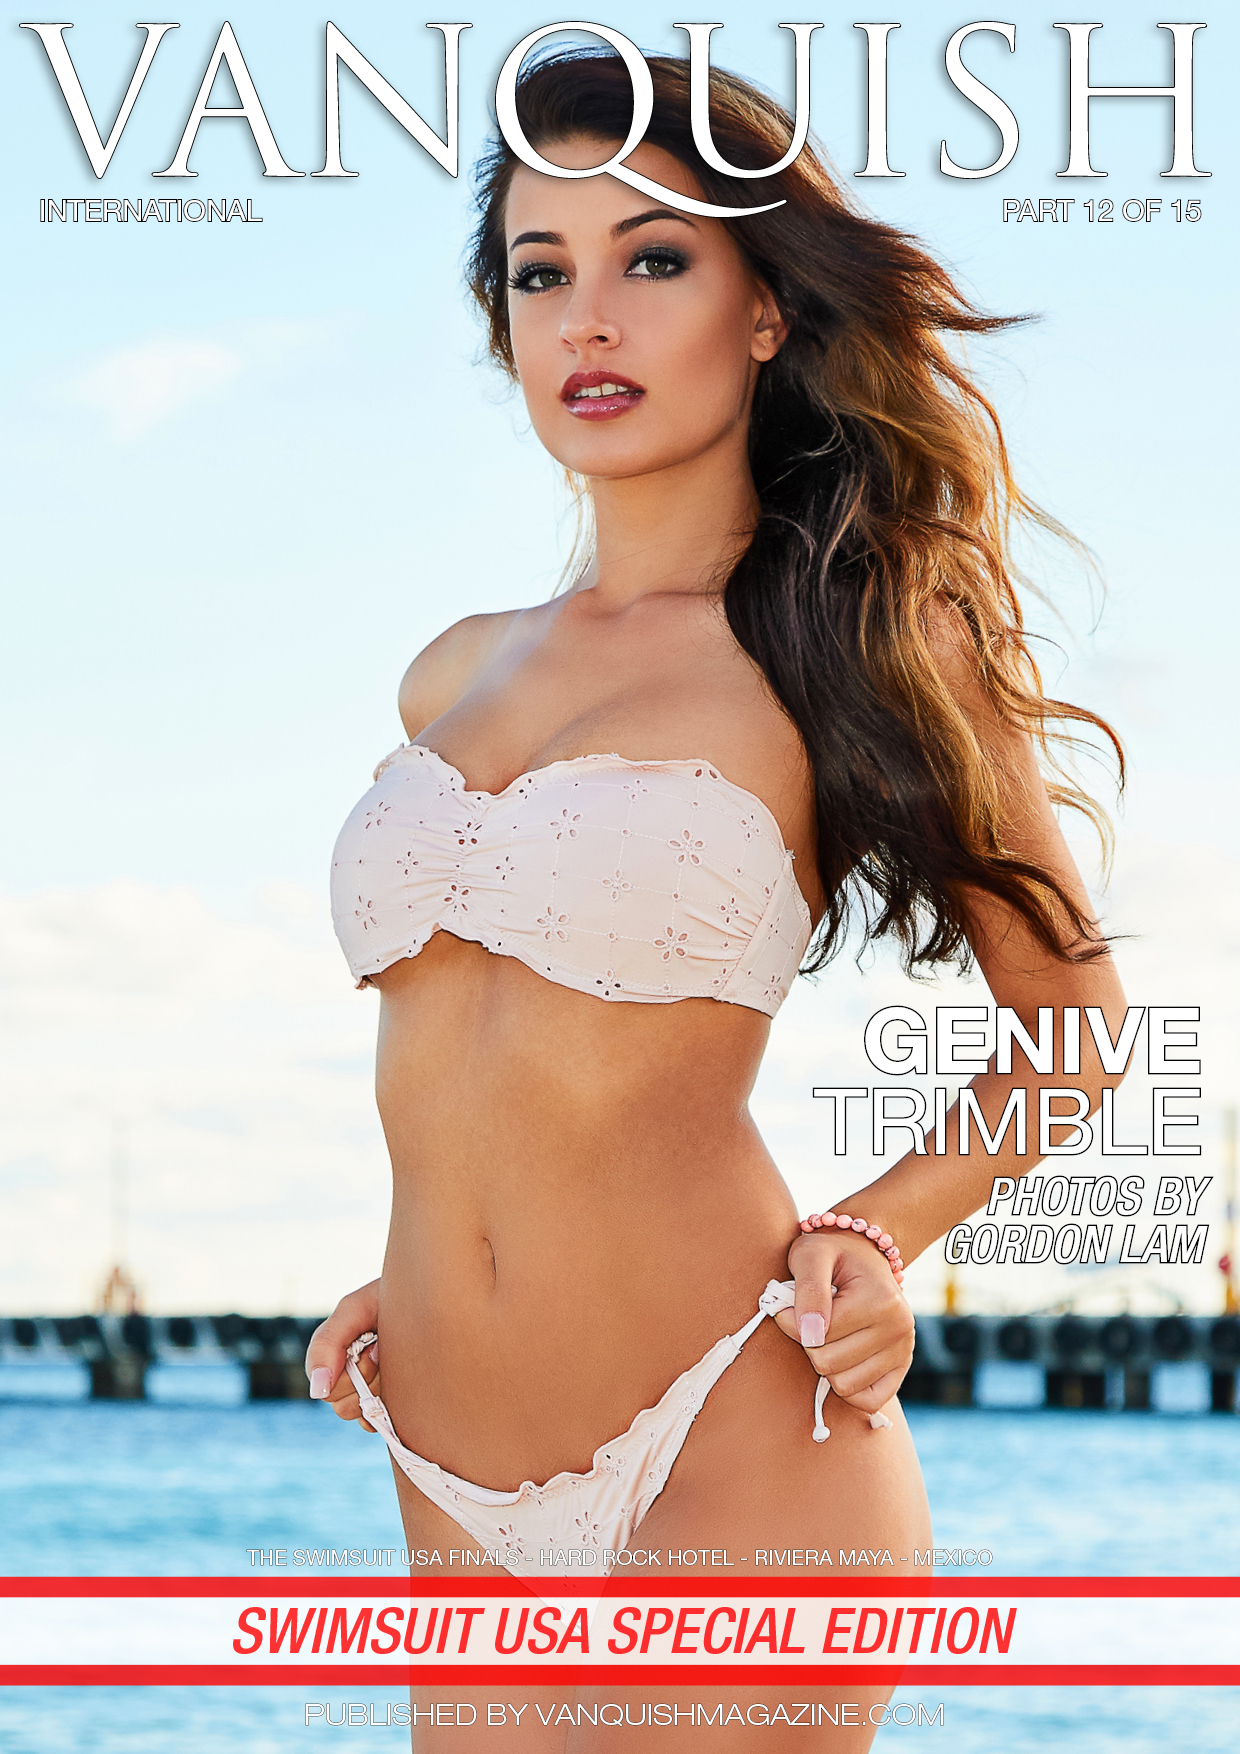 Vanquish Magazine – Swimsuit Usa – Part 12 – Genive Trimble